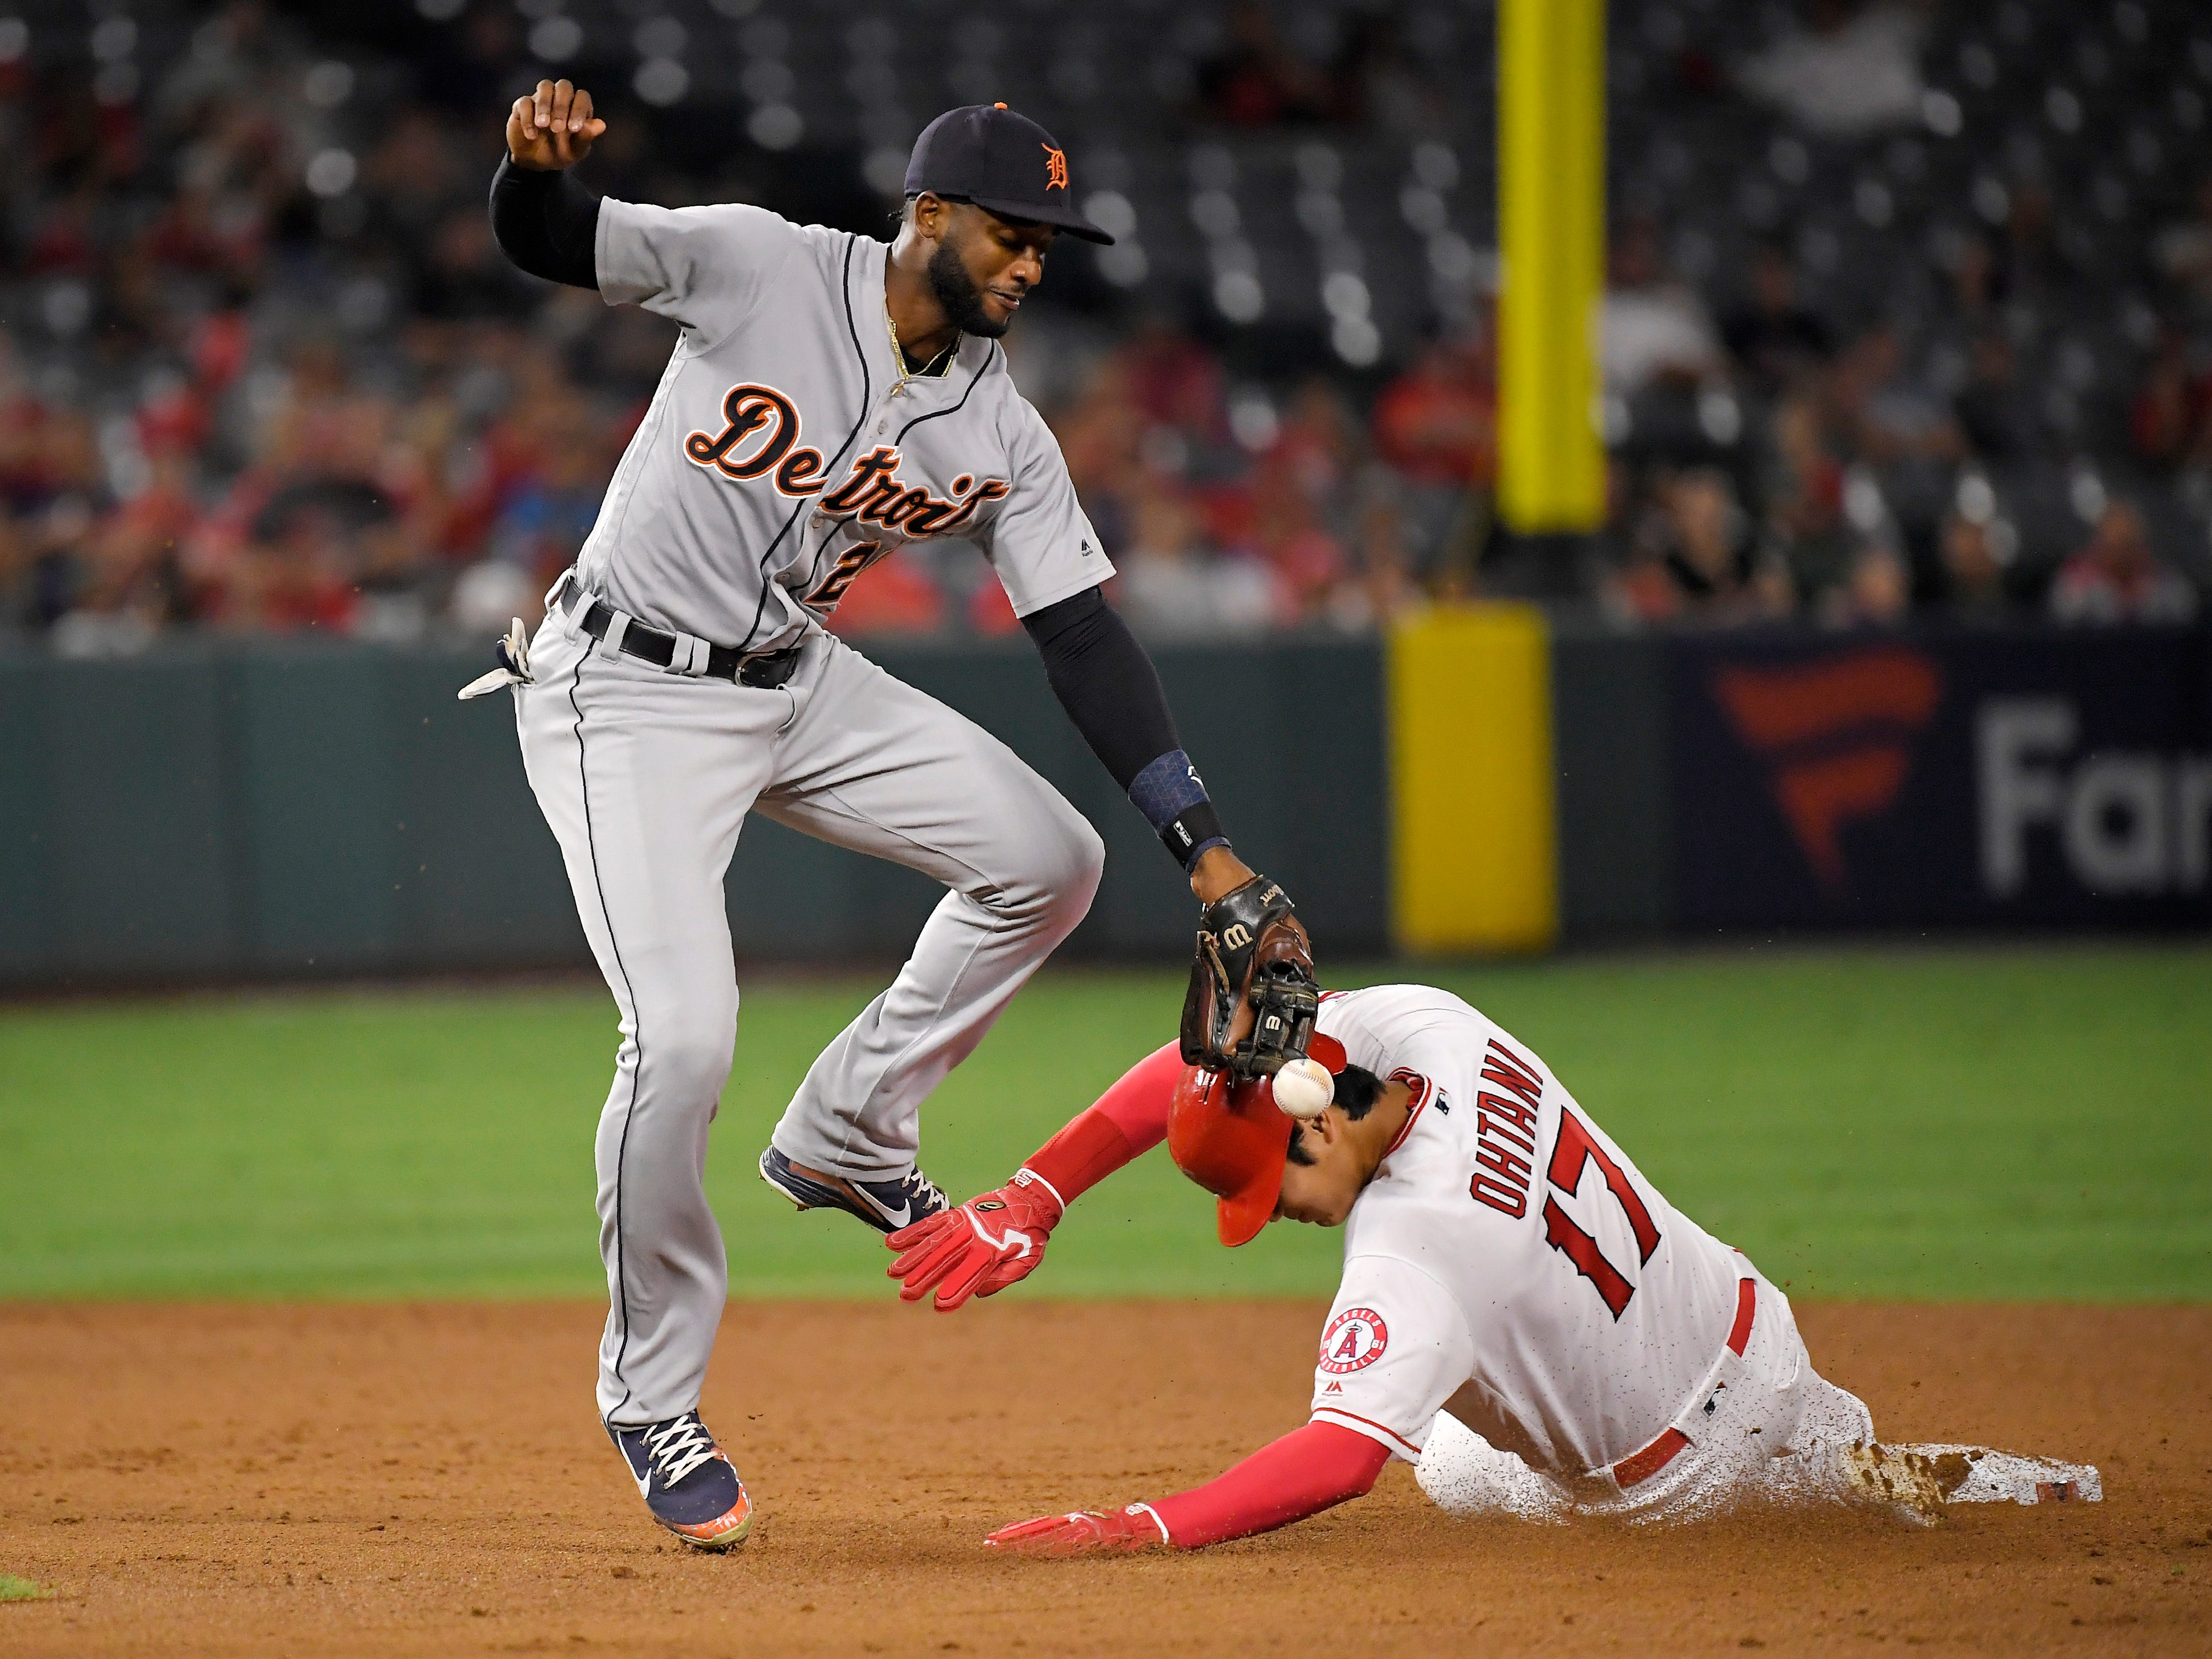 Los Angeles Angels' Shohei Ohtani, right, of Japan, knocks the ball from the glove of Detroit Tigers second baseman Niko Goodrum as he steals second during the eighth inning.